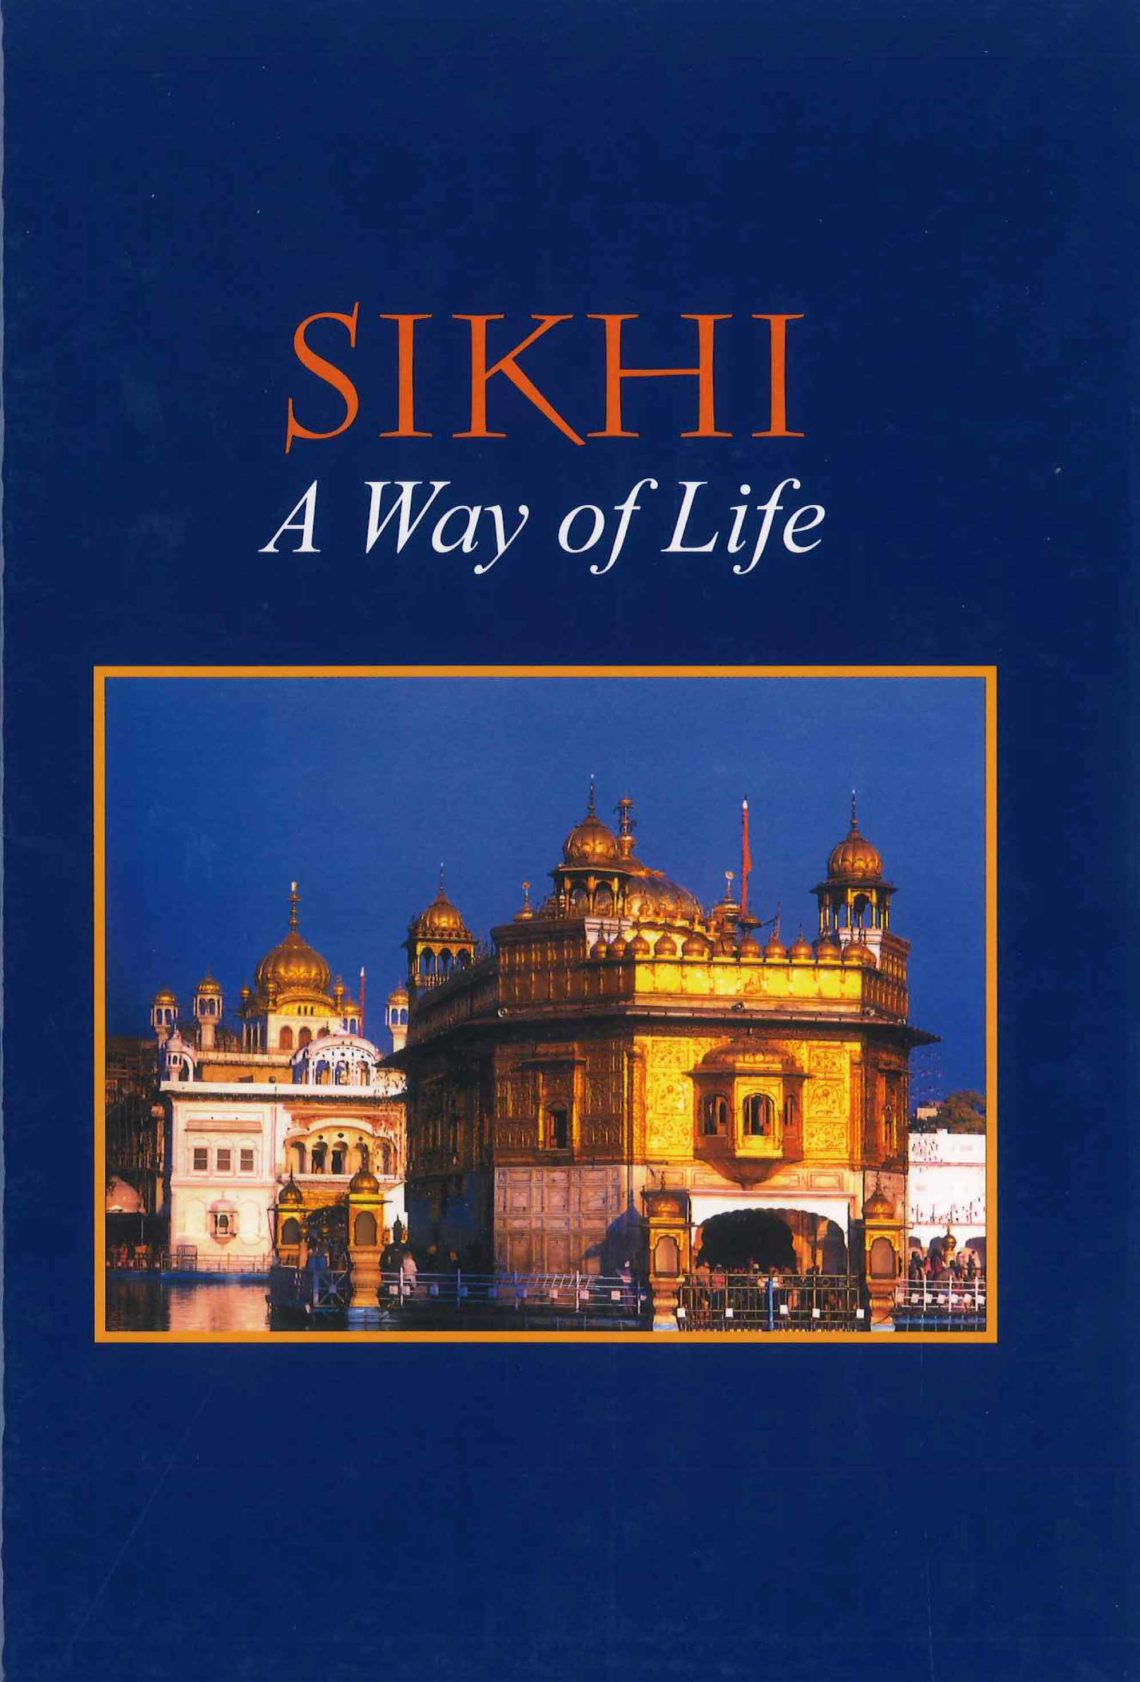 Sikhi Way of Life